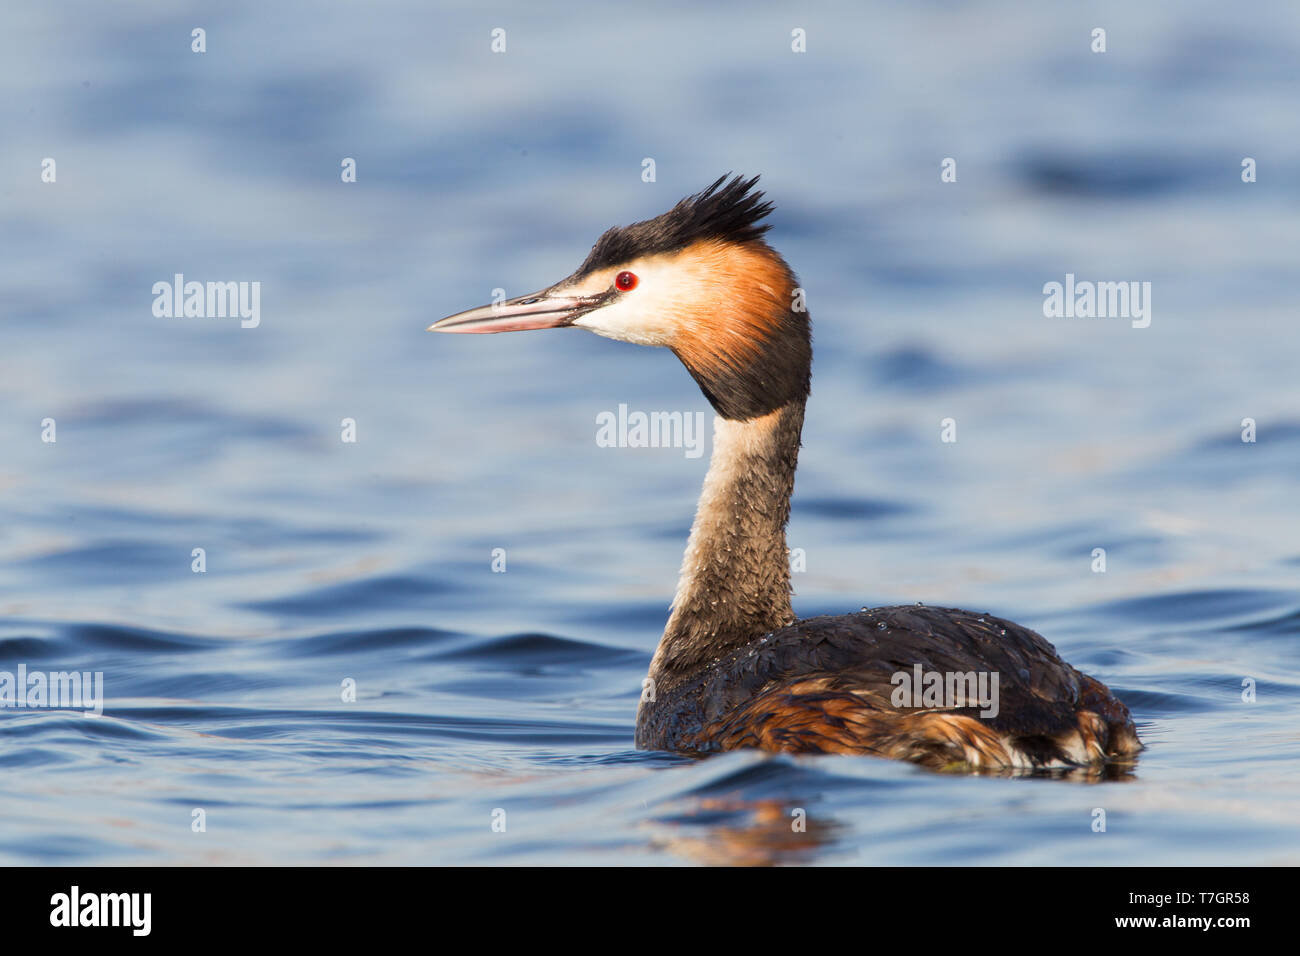 Adult Great Crested Grebe in breedingplumage Stock Photo